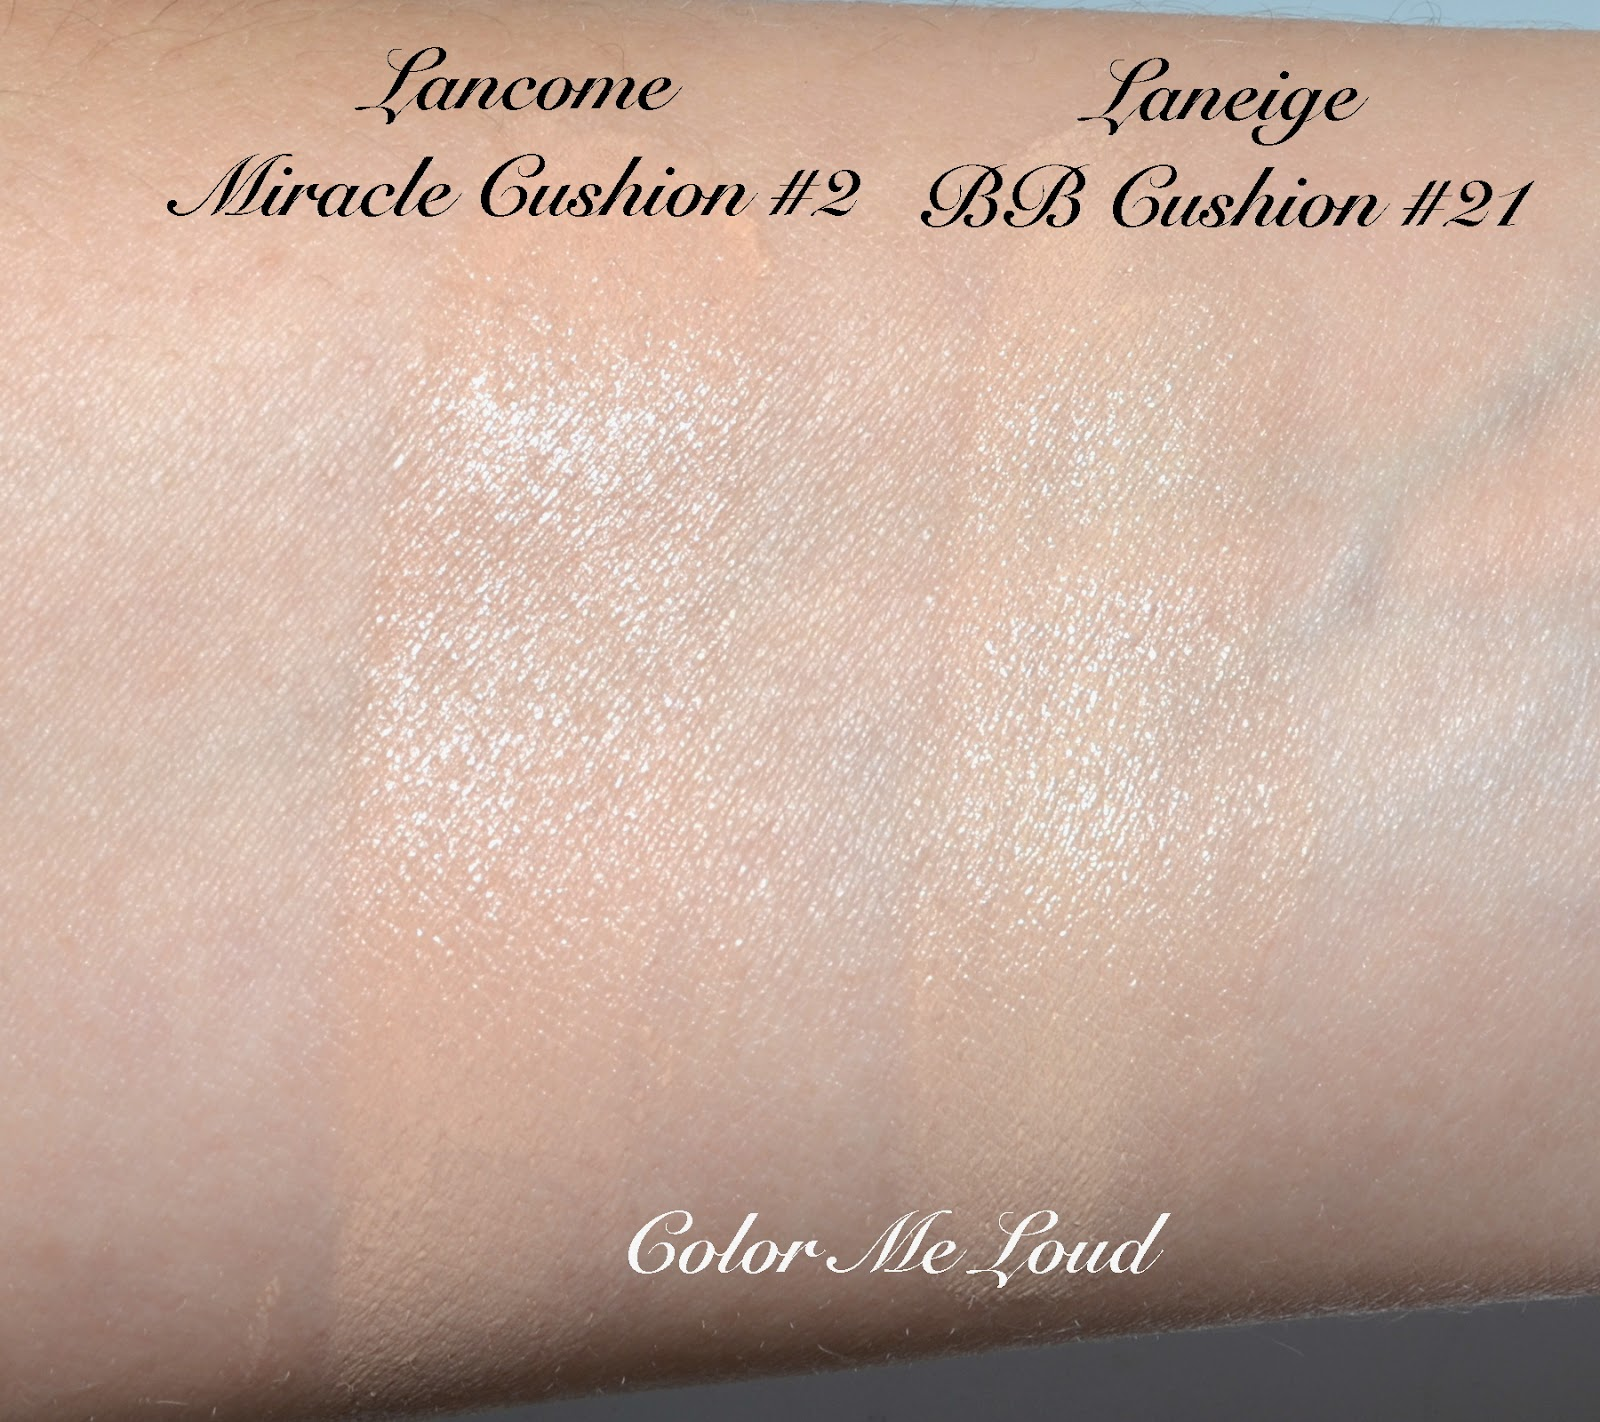 Lancme miracle cushion foundation review swatch comparison fotd swatch comparison lancme miracle cushion foundation 2 vs laneige bb cushion 21 nvjuhfo Image collections